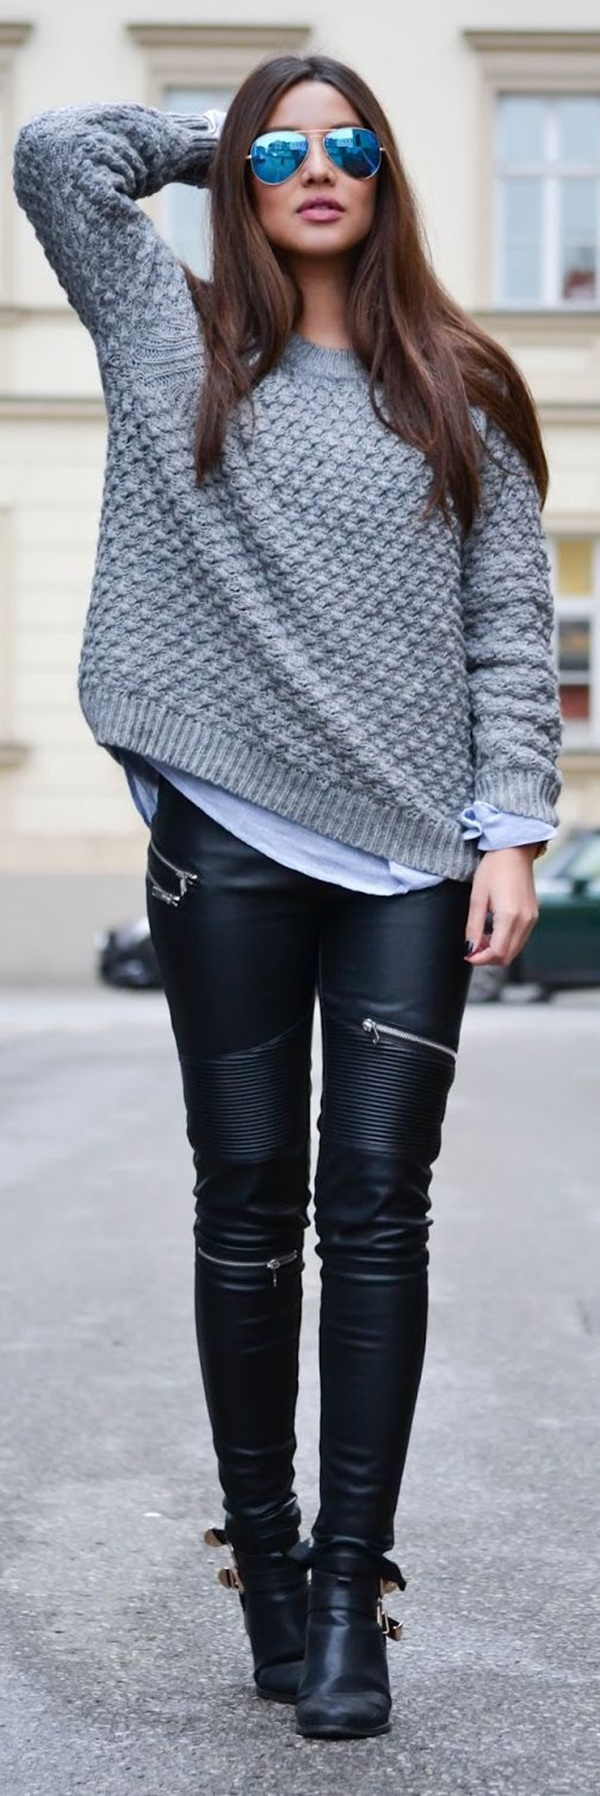 Leather Pants Outfits Ideas (4)